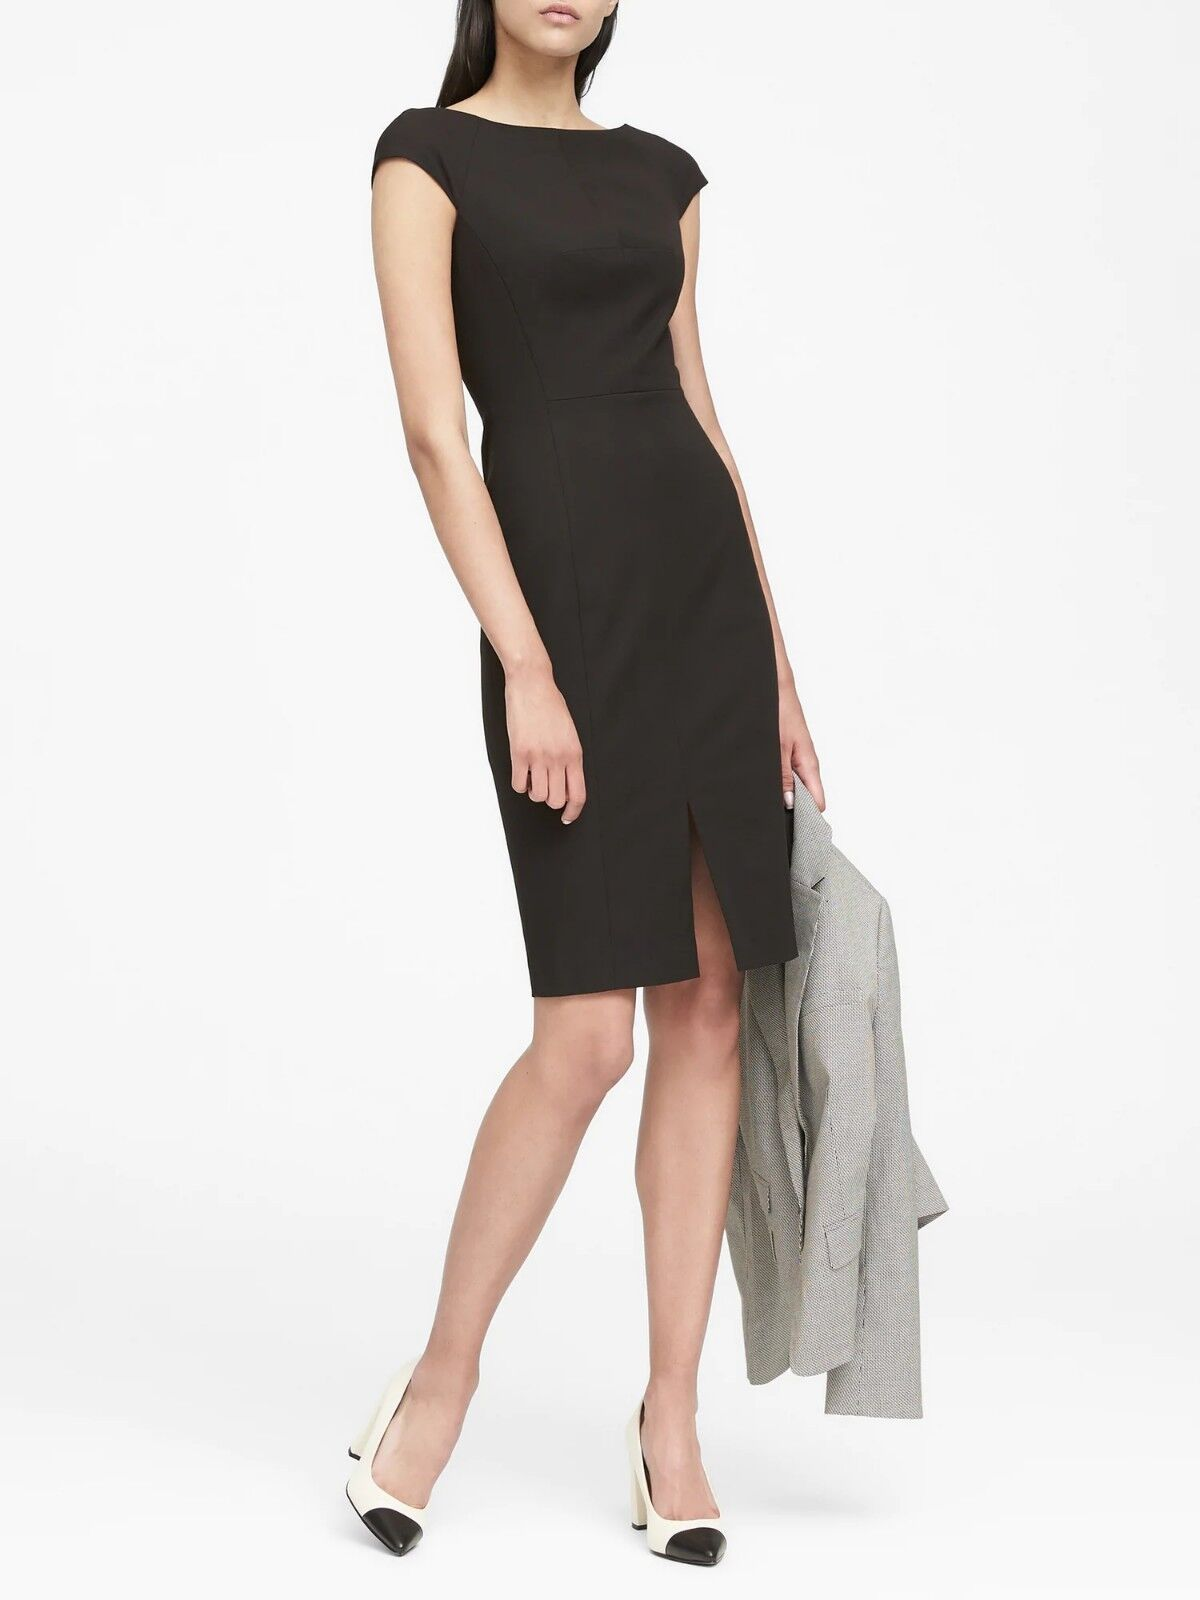 Banana Republic Bi-Stretch V-Back Sheath Dress, schwarz Größe 10     E1212